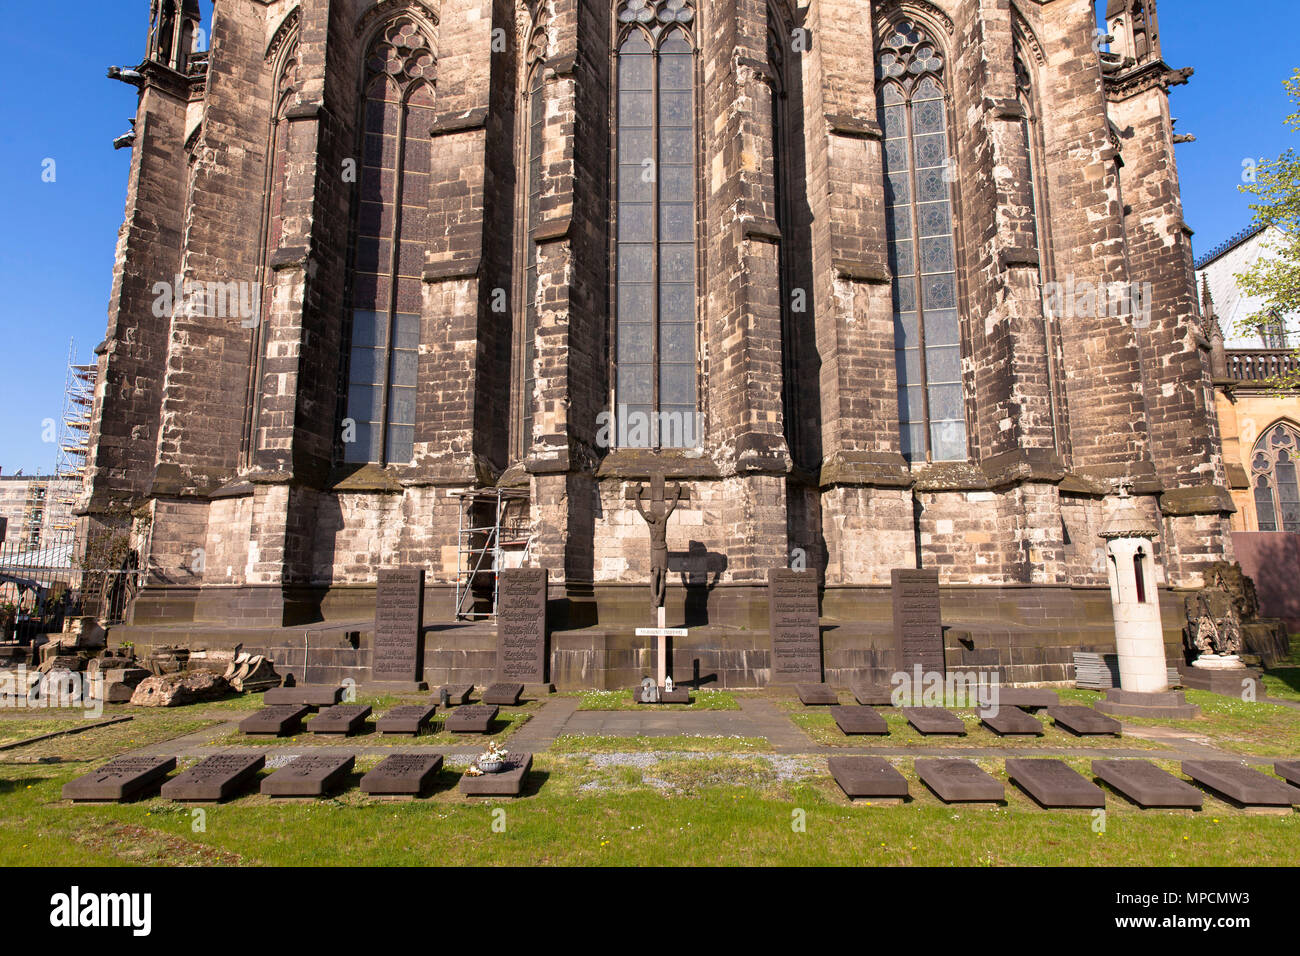 Germany Cologne Capitular Cemetery In Front Of The Eastside Of The Cathedral Deutschland Koeln Der Dom Der Domherrenfriedhof An Der Ostseite B Stock Photo Alamy